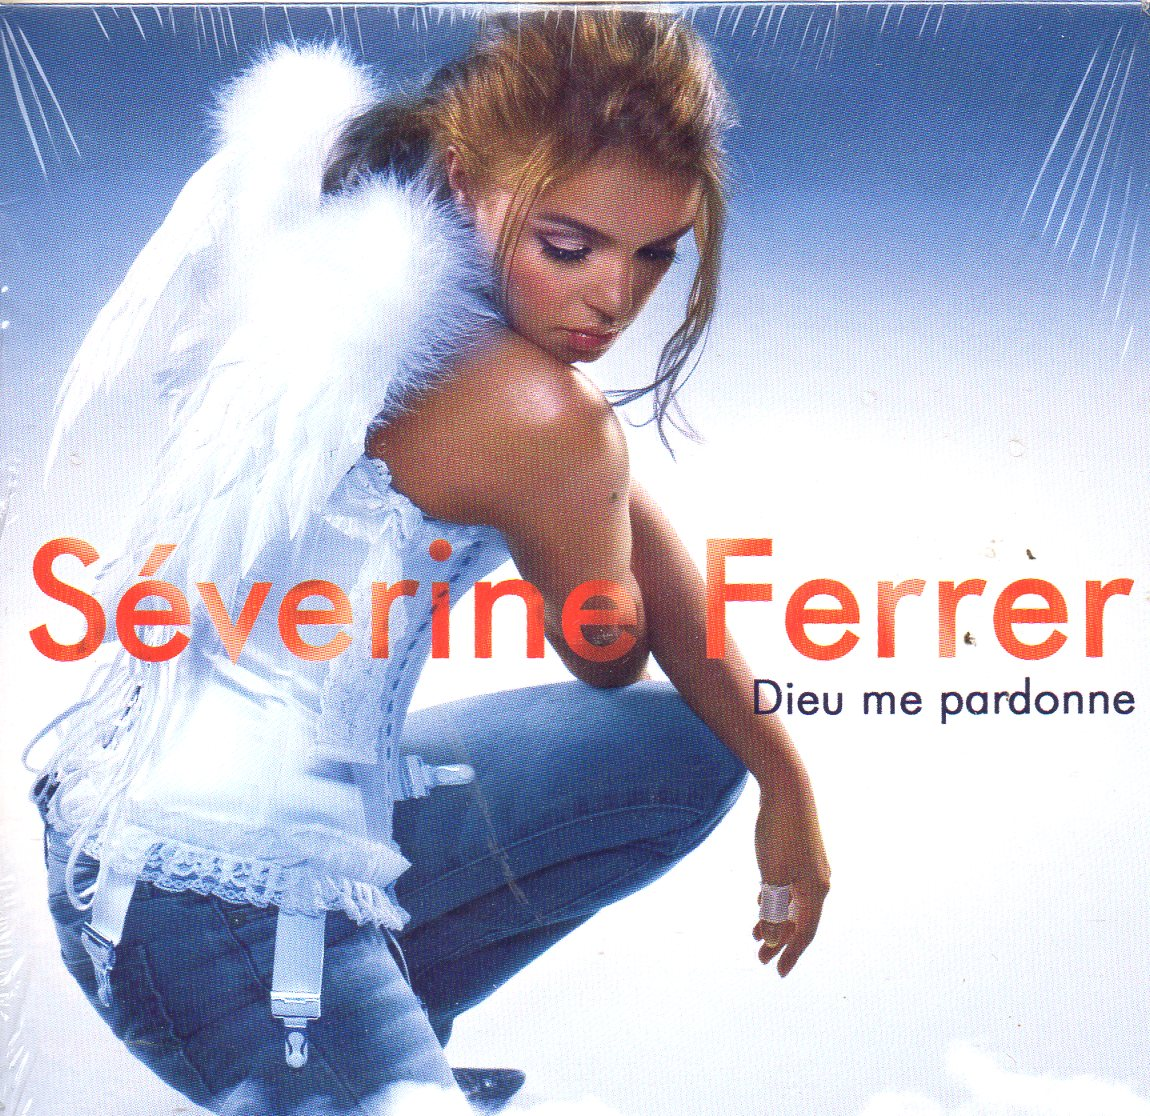 SÉVERINE FERRER - Dieu me pardonne 2-track CARD SLEEVE - CD single